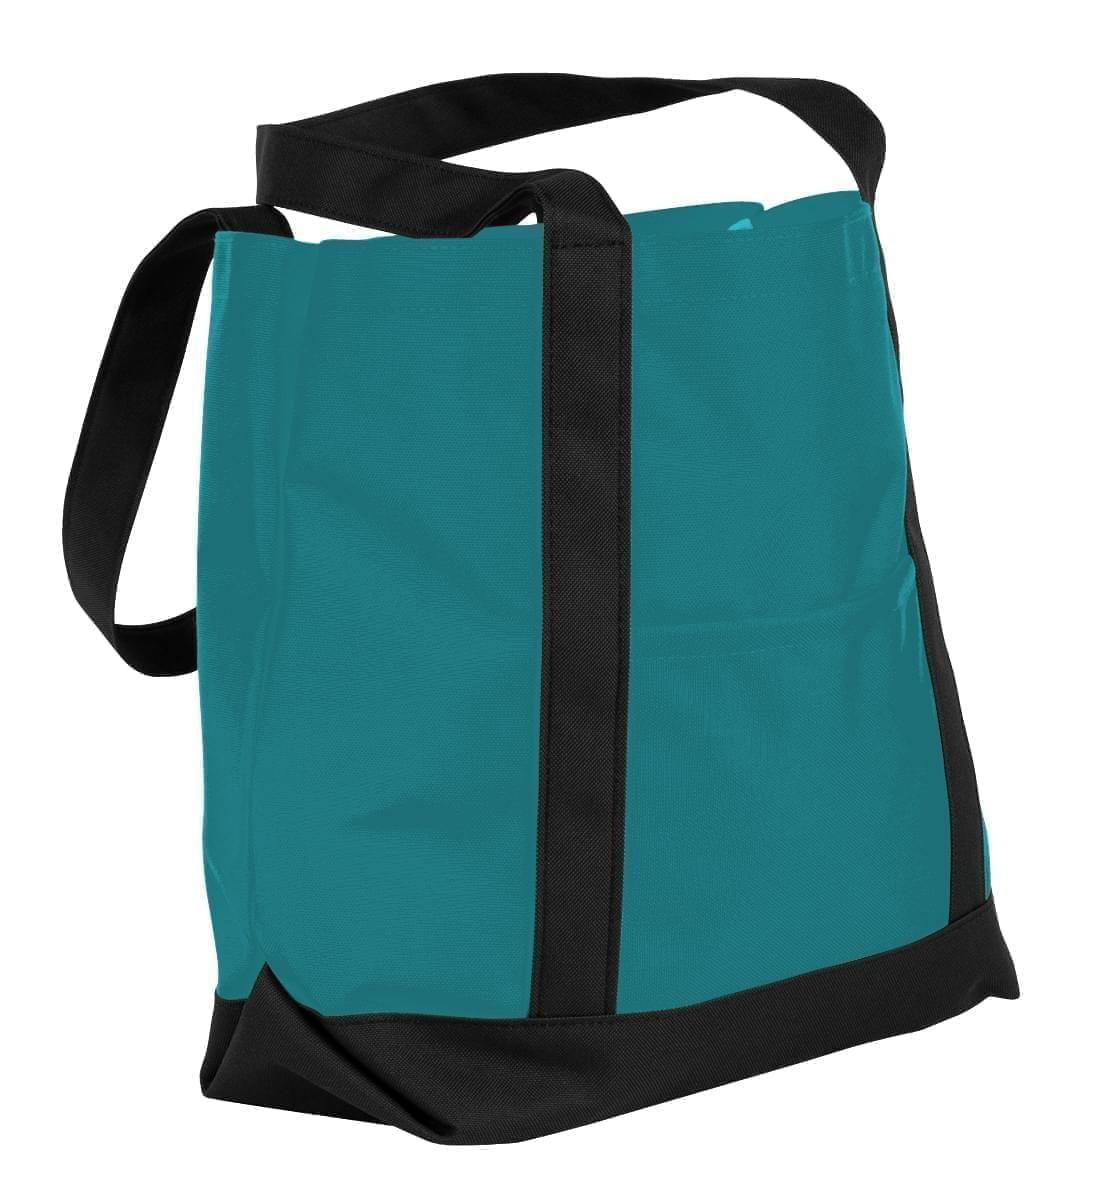 USA Made Nylon Poly Boat Tote Bags, Turquoise-Black, XAACL1UA9C